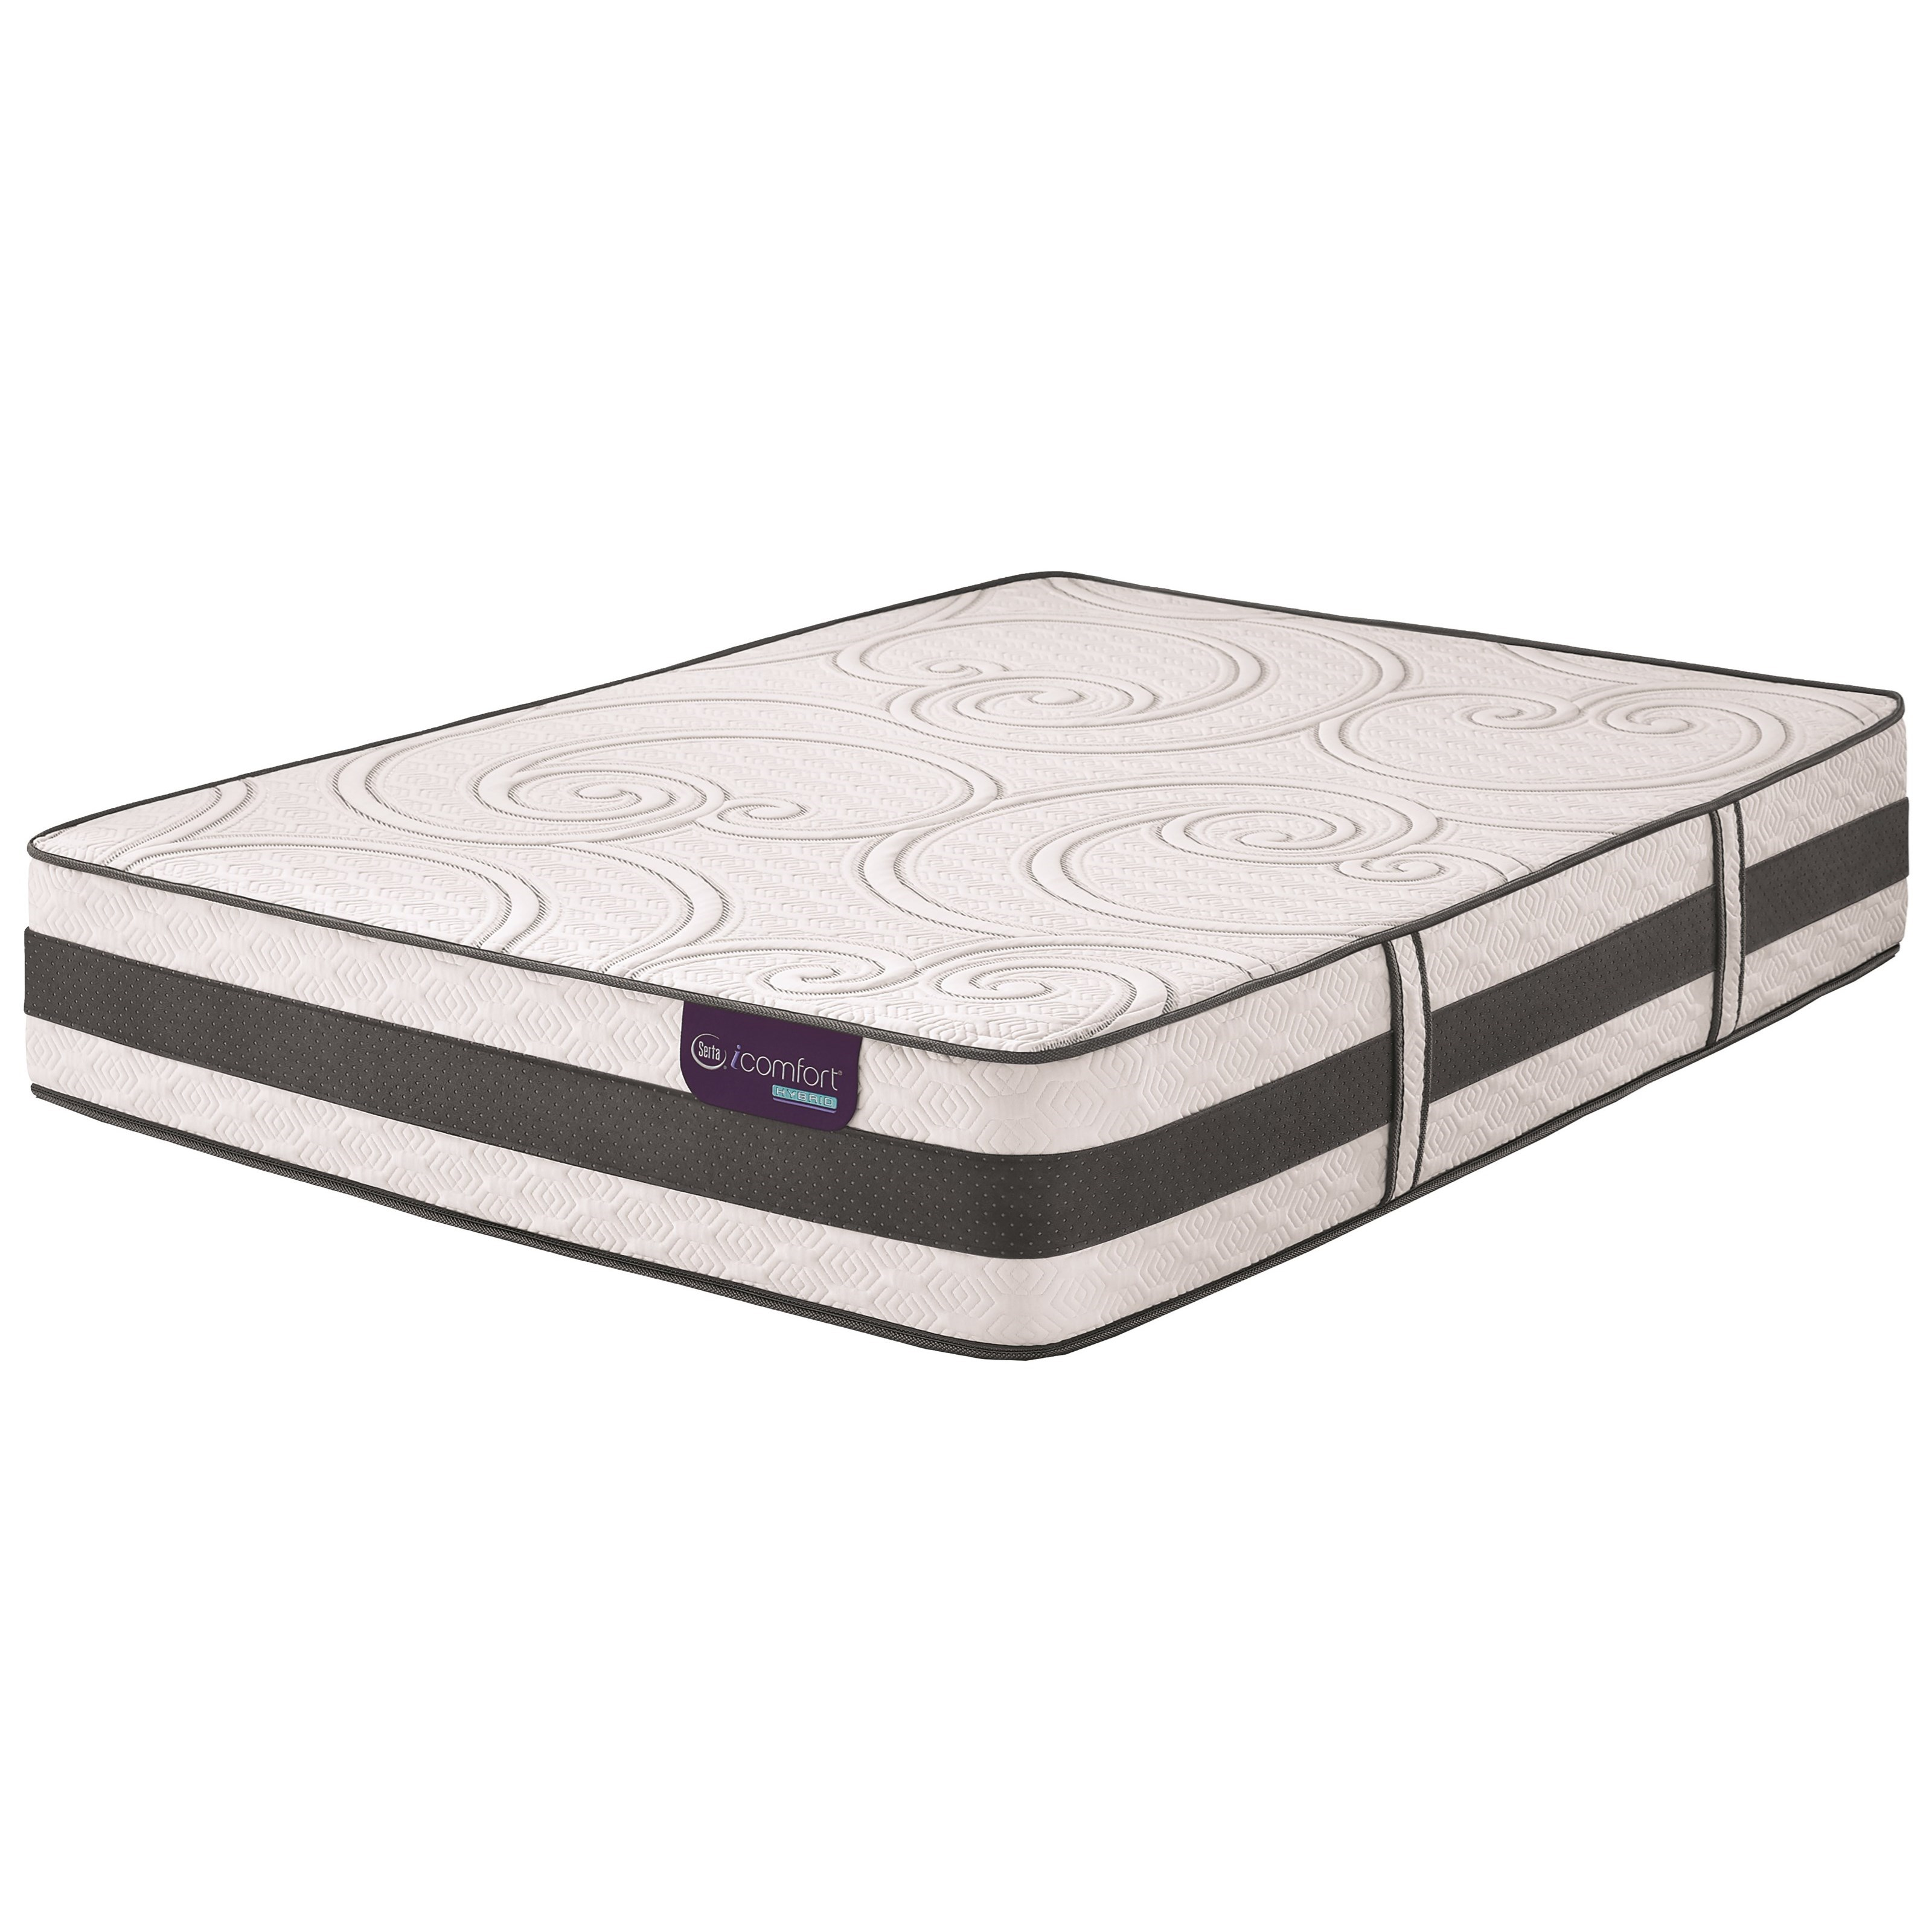 Serta iComfort Hybrid Discoverer Full Firm Hybrid Smooth Top Mattress - Item Number: DiscovererFirm-F